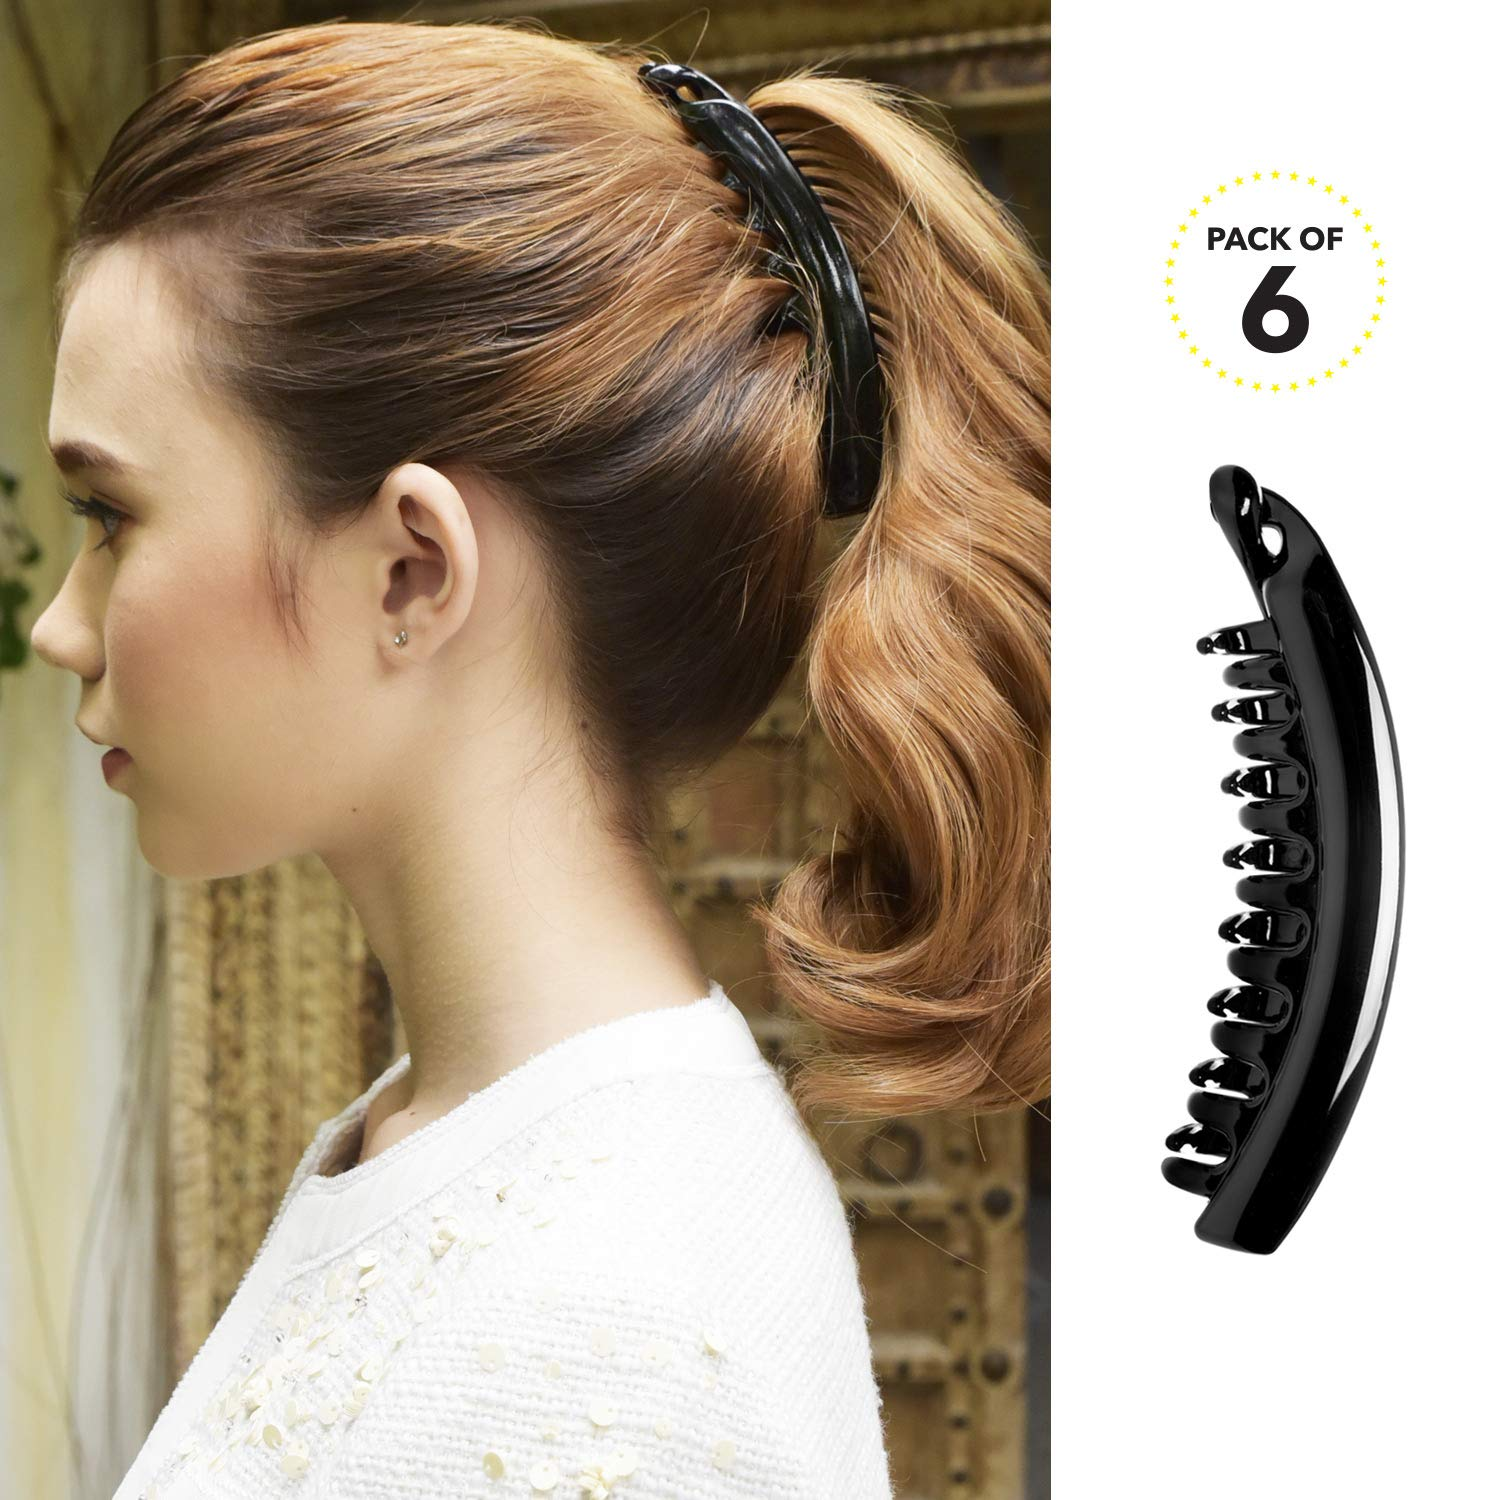 RC ROCHE ORNAMENT 6 Pcs Womens Premium Hair Plastic Banana Classic Clincher Strong Hold Ponytail Maker Styling Girls Ladies Beauty Accessory Clasp Clip, Large Black : Beauty